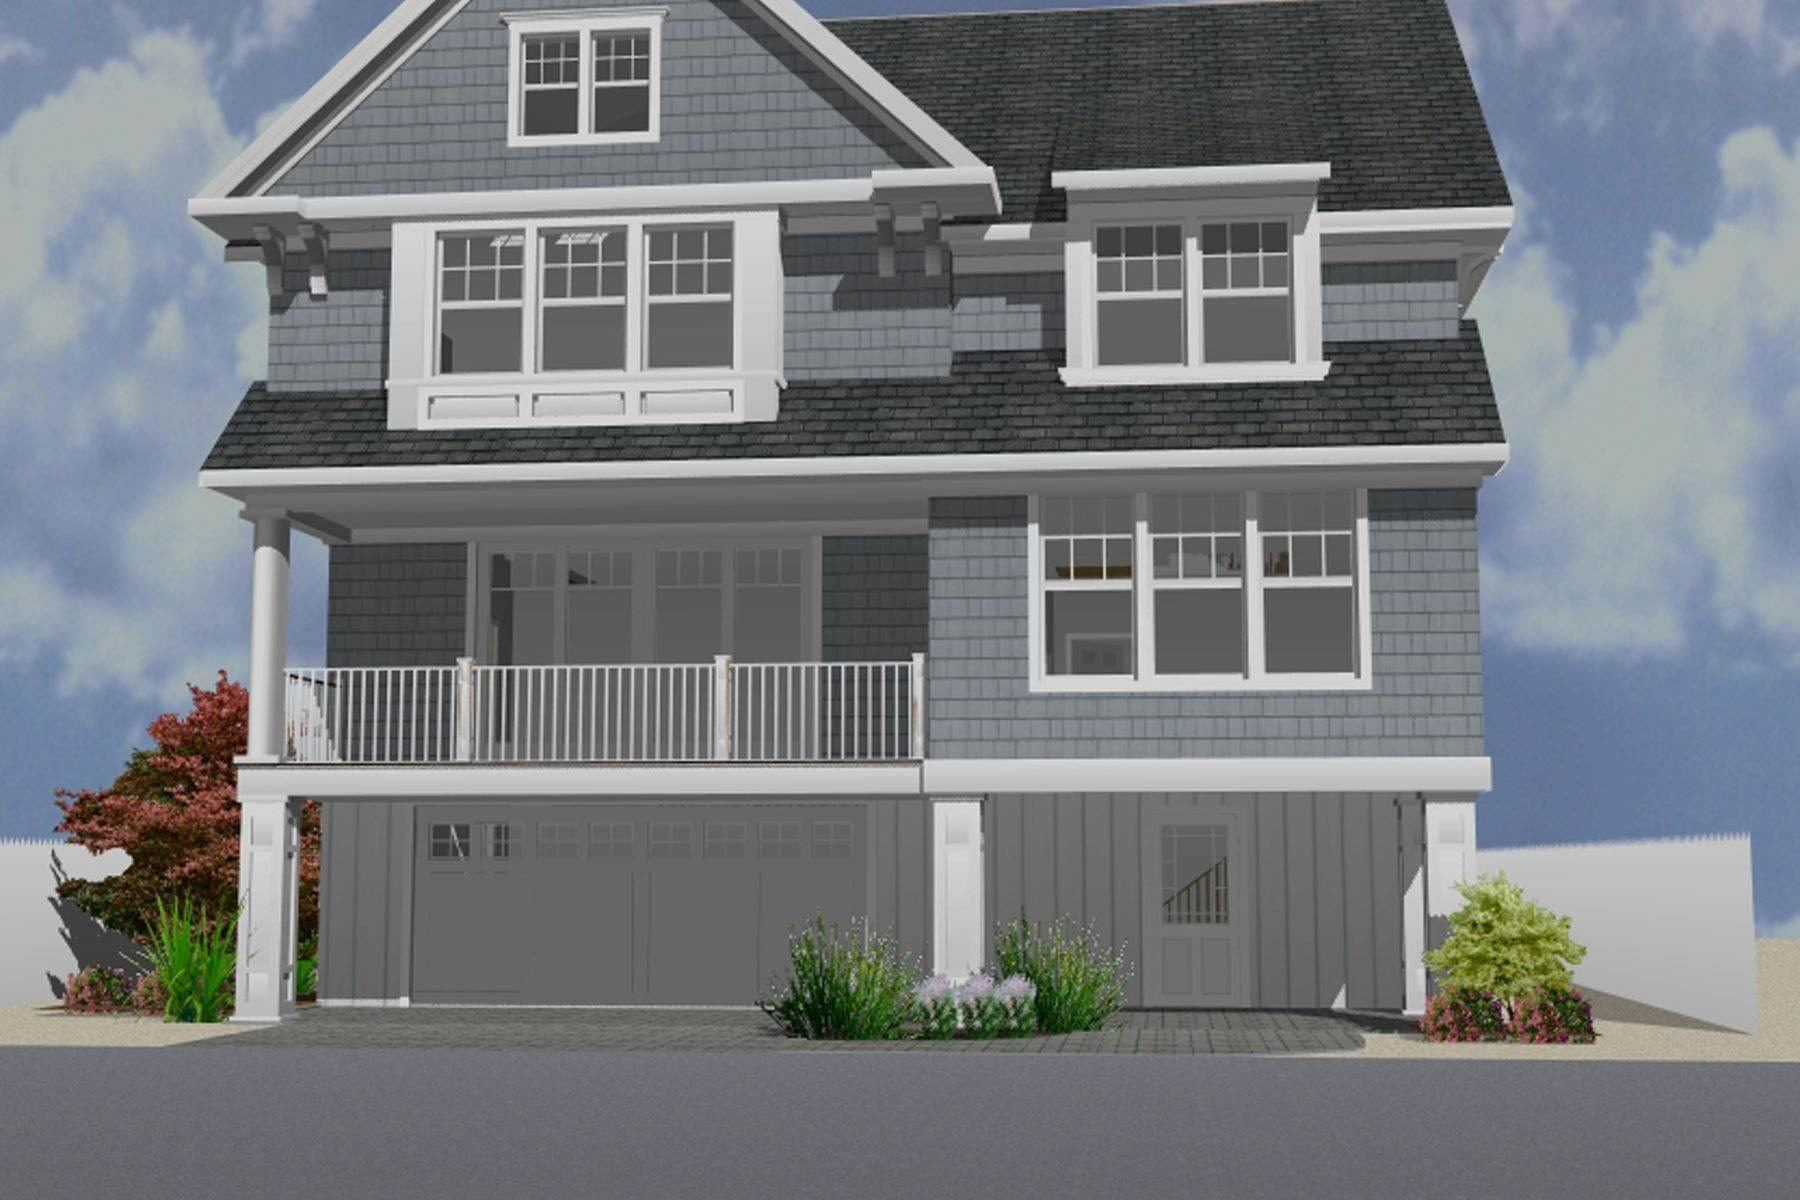 Single Family Homes for Sale at Unique Opportunity To Be Part Of A Brand New Private Beach Association 8 Cummins Street Mantoloking, New Jersey 08738 United States